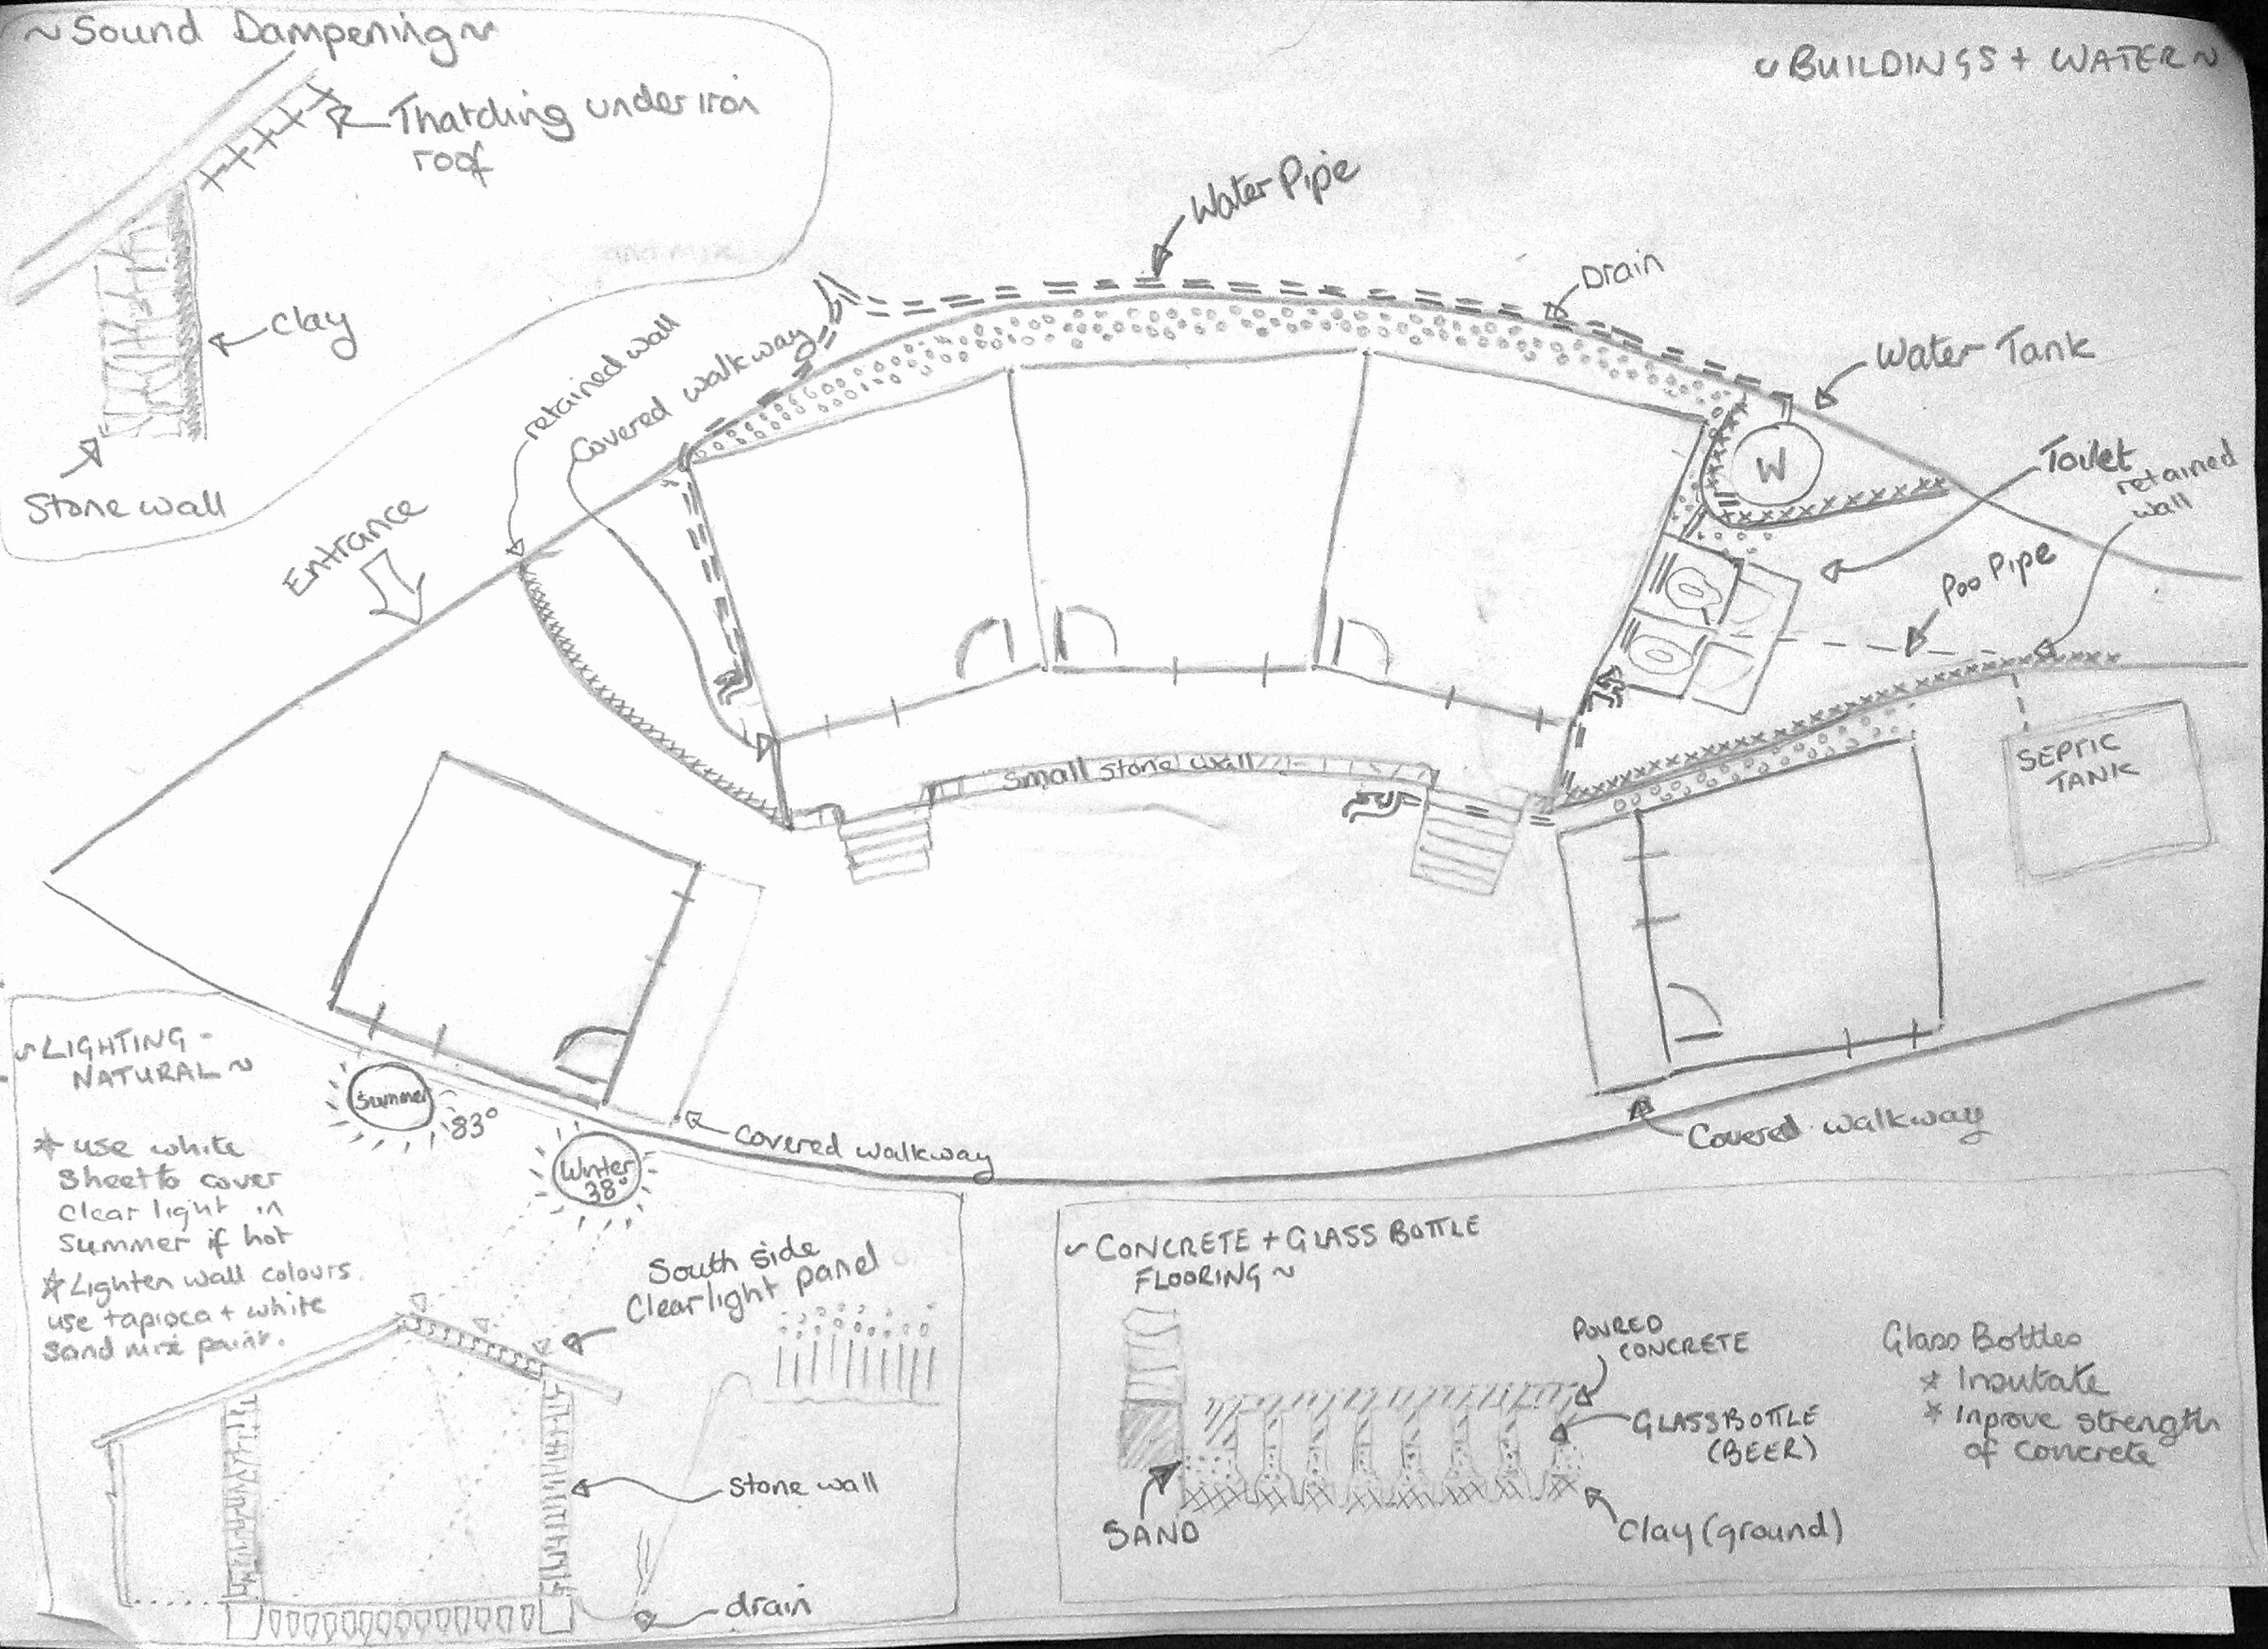 Build A School On Heaven Hill Gaunshahar Nepal Custom Ink Fundraising Wiring Schematic Diagram October 2014 21 With The Help Of Volunteer And After Weeks Drawings Revisions Weve Come Up Design For Which We Believe